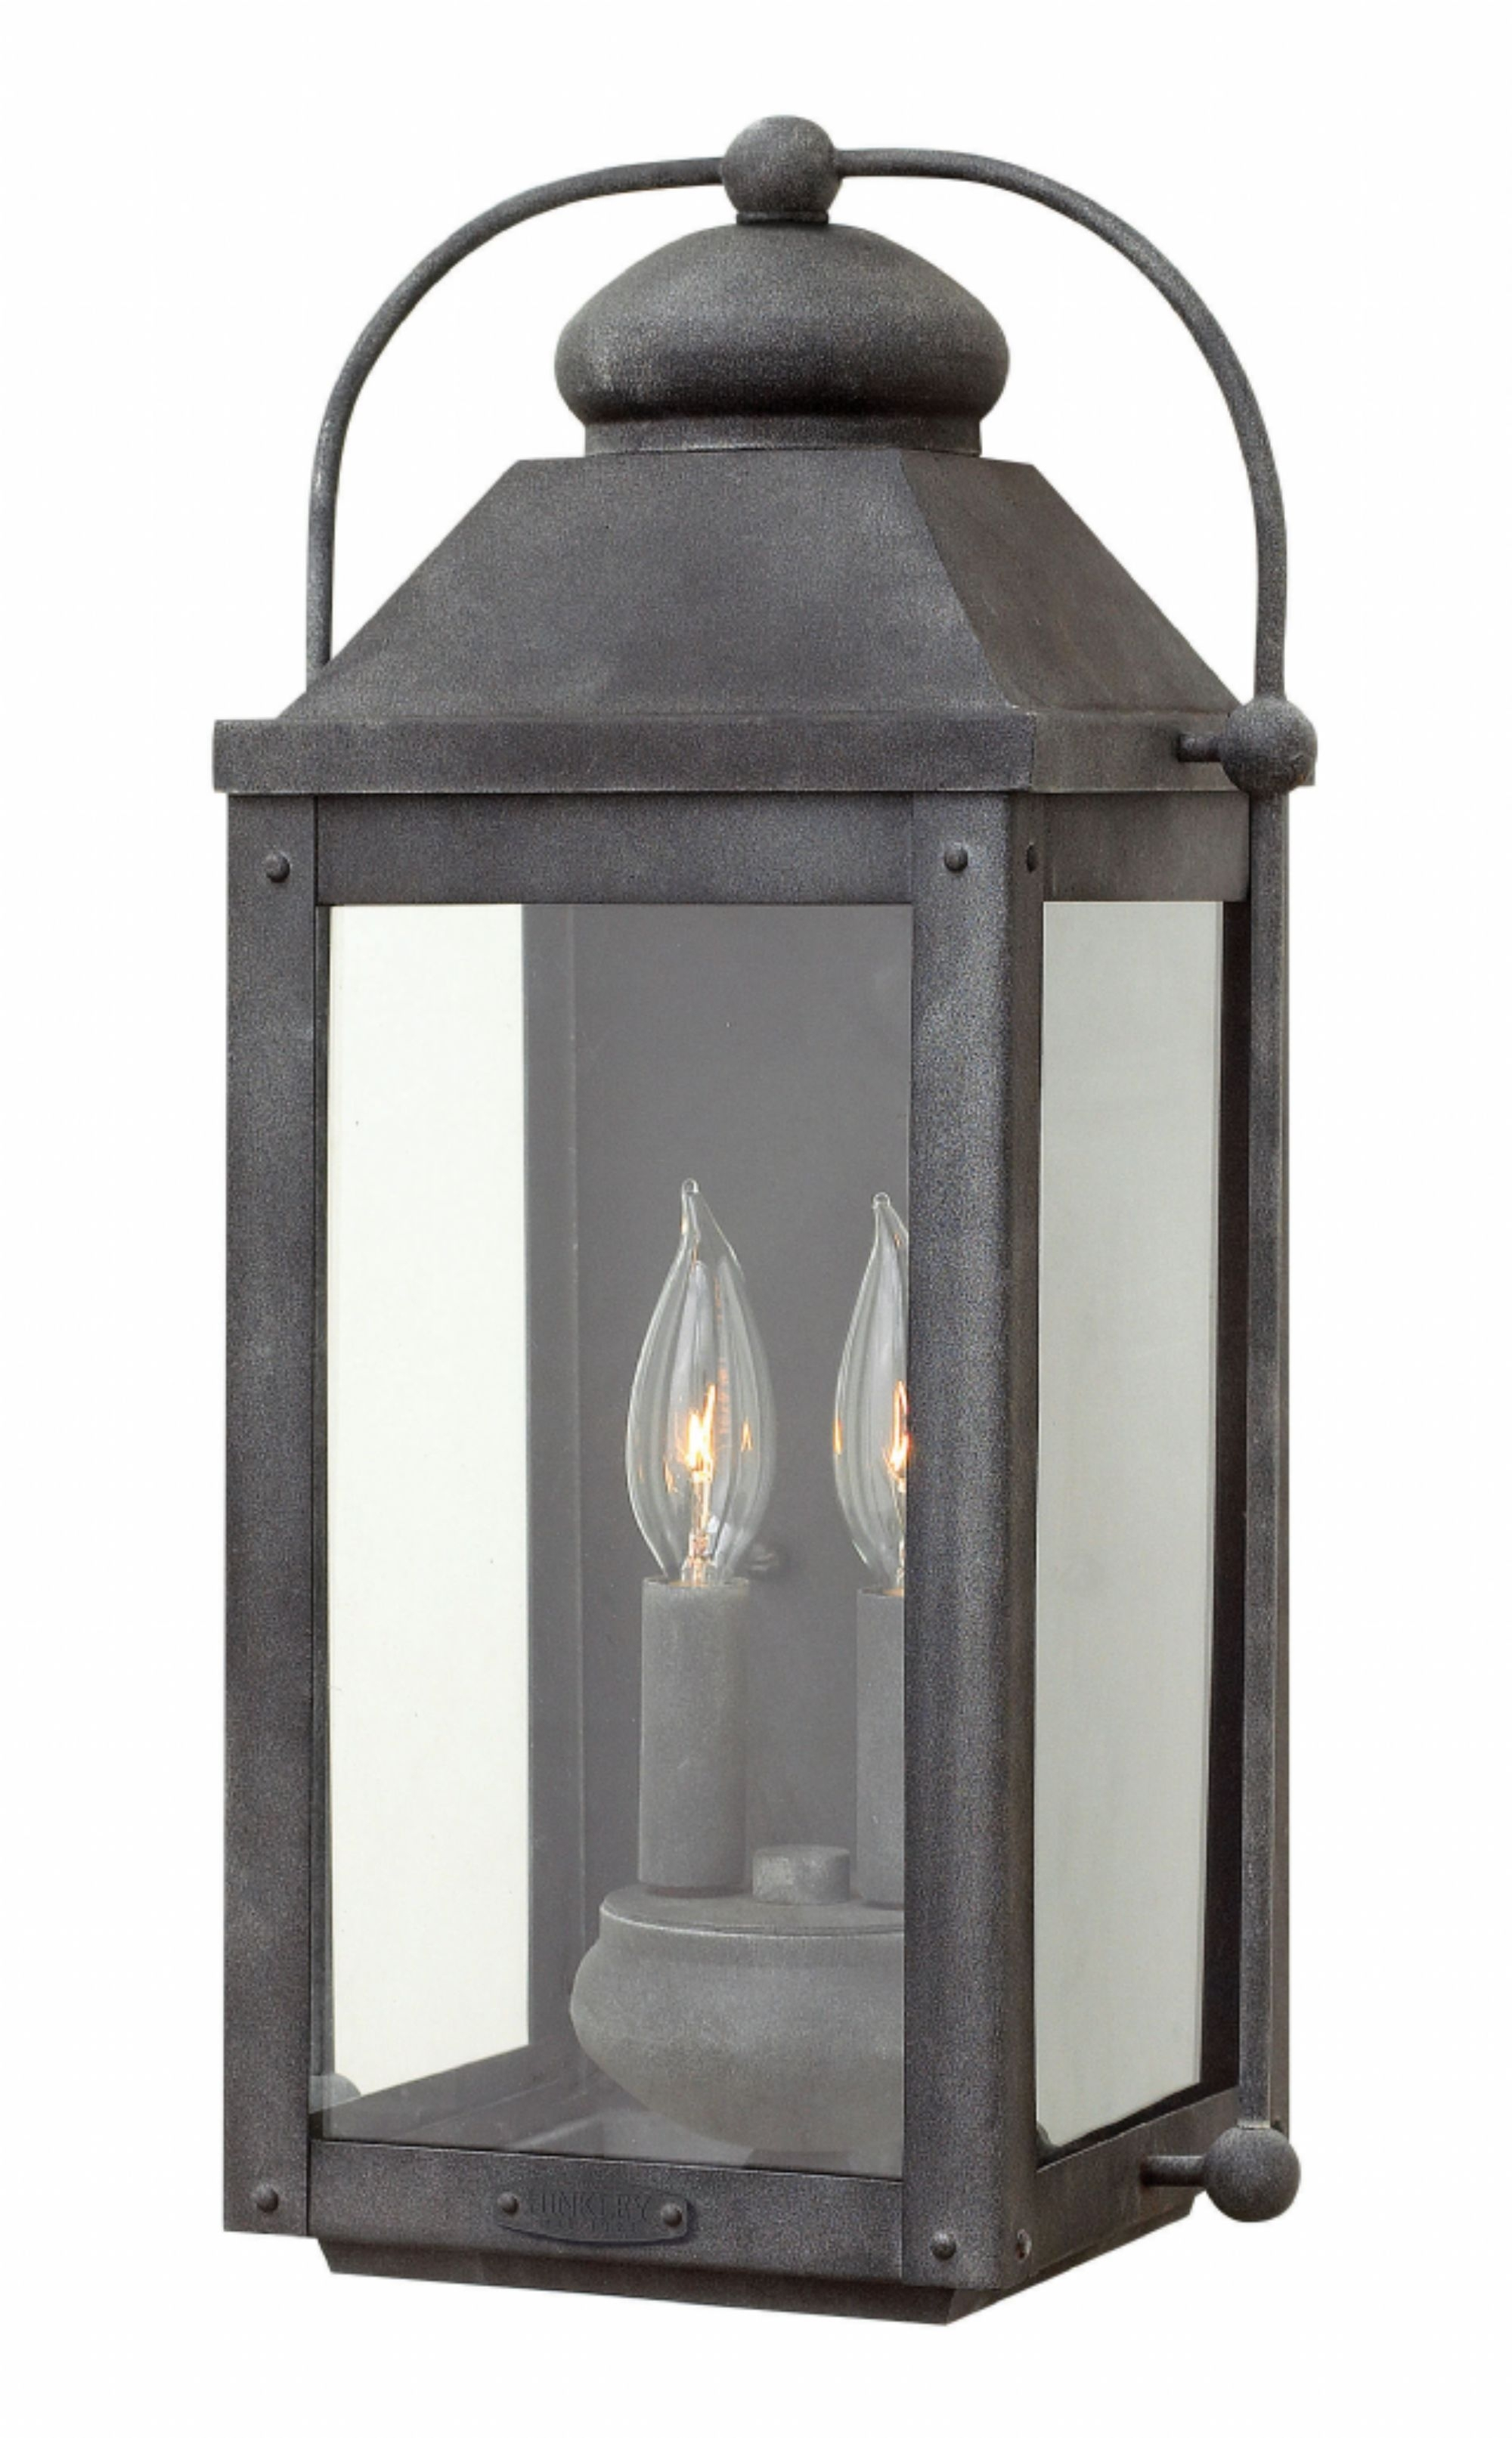 Battery Wall Sconce | Wall Sconces Ideas Floral | Pinterest with regard to Outdoor Lanterns Lights (Image 1 of 20)